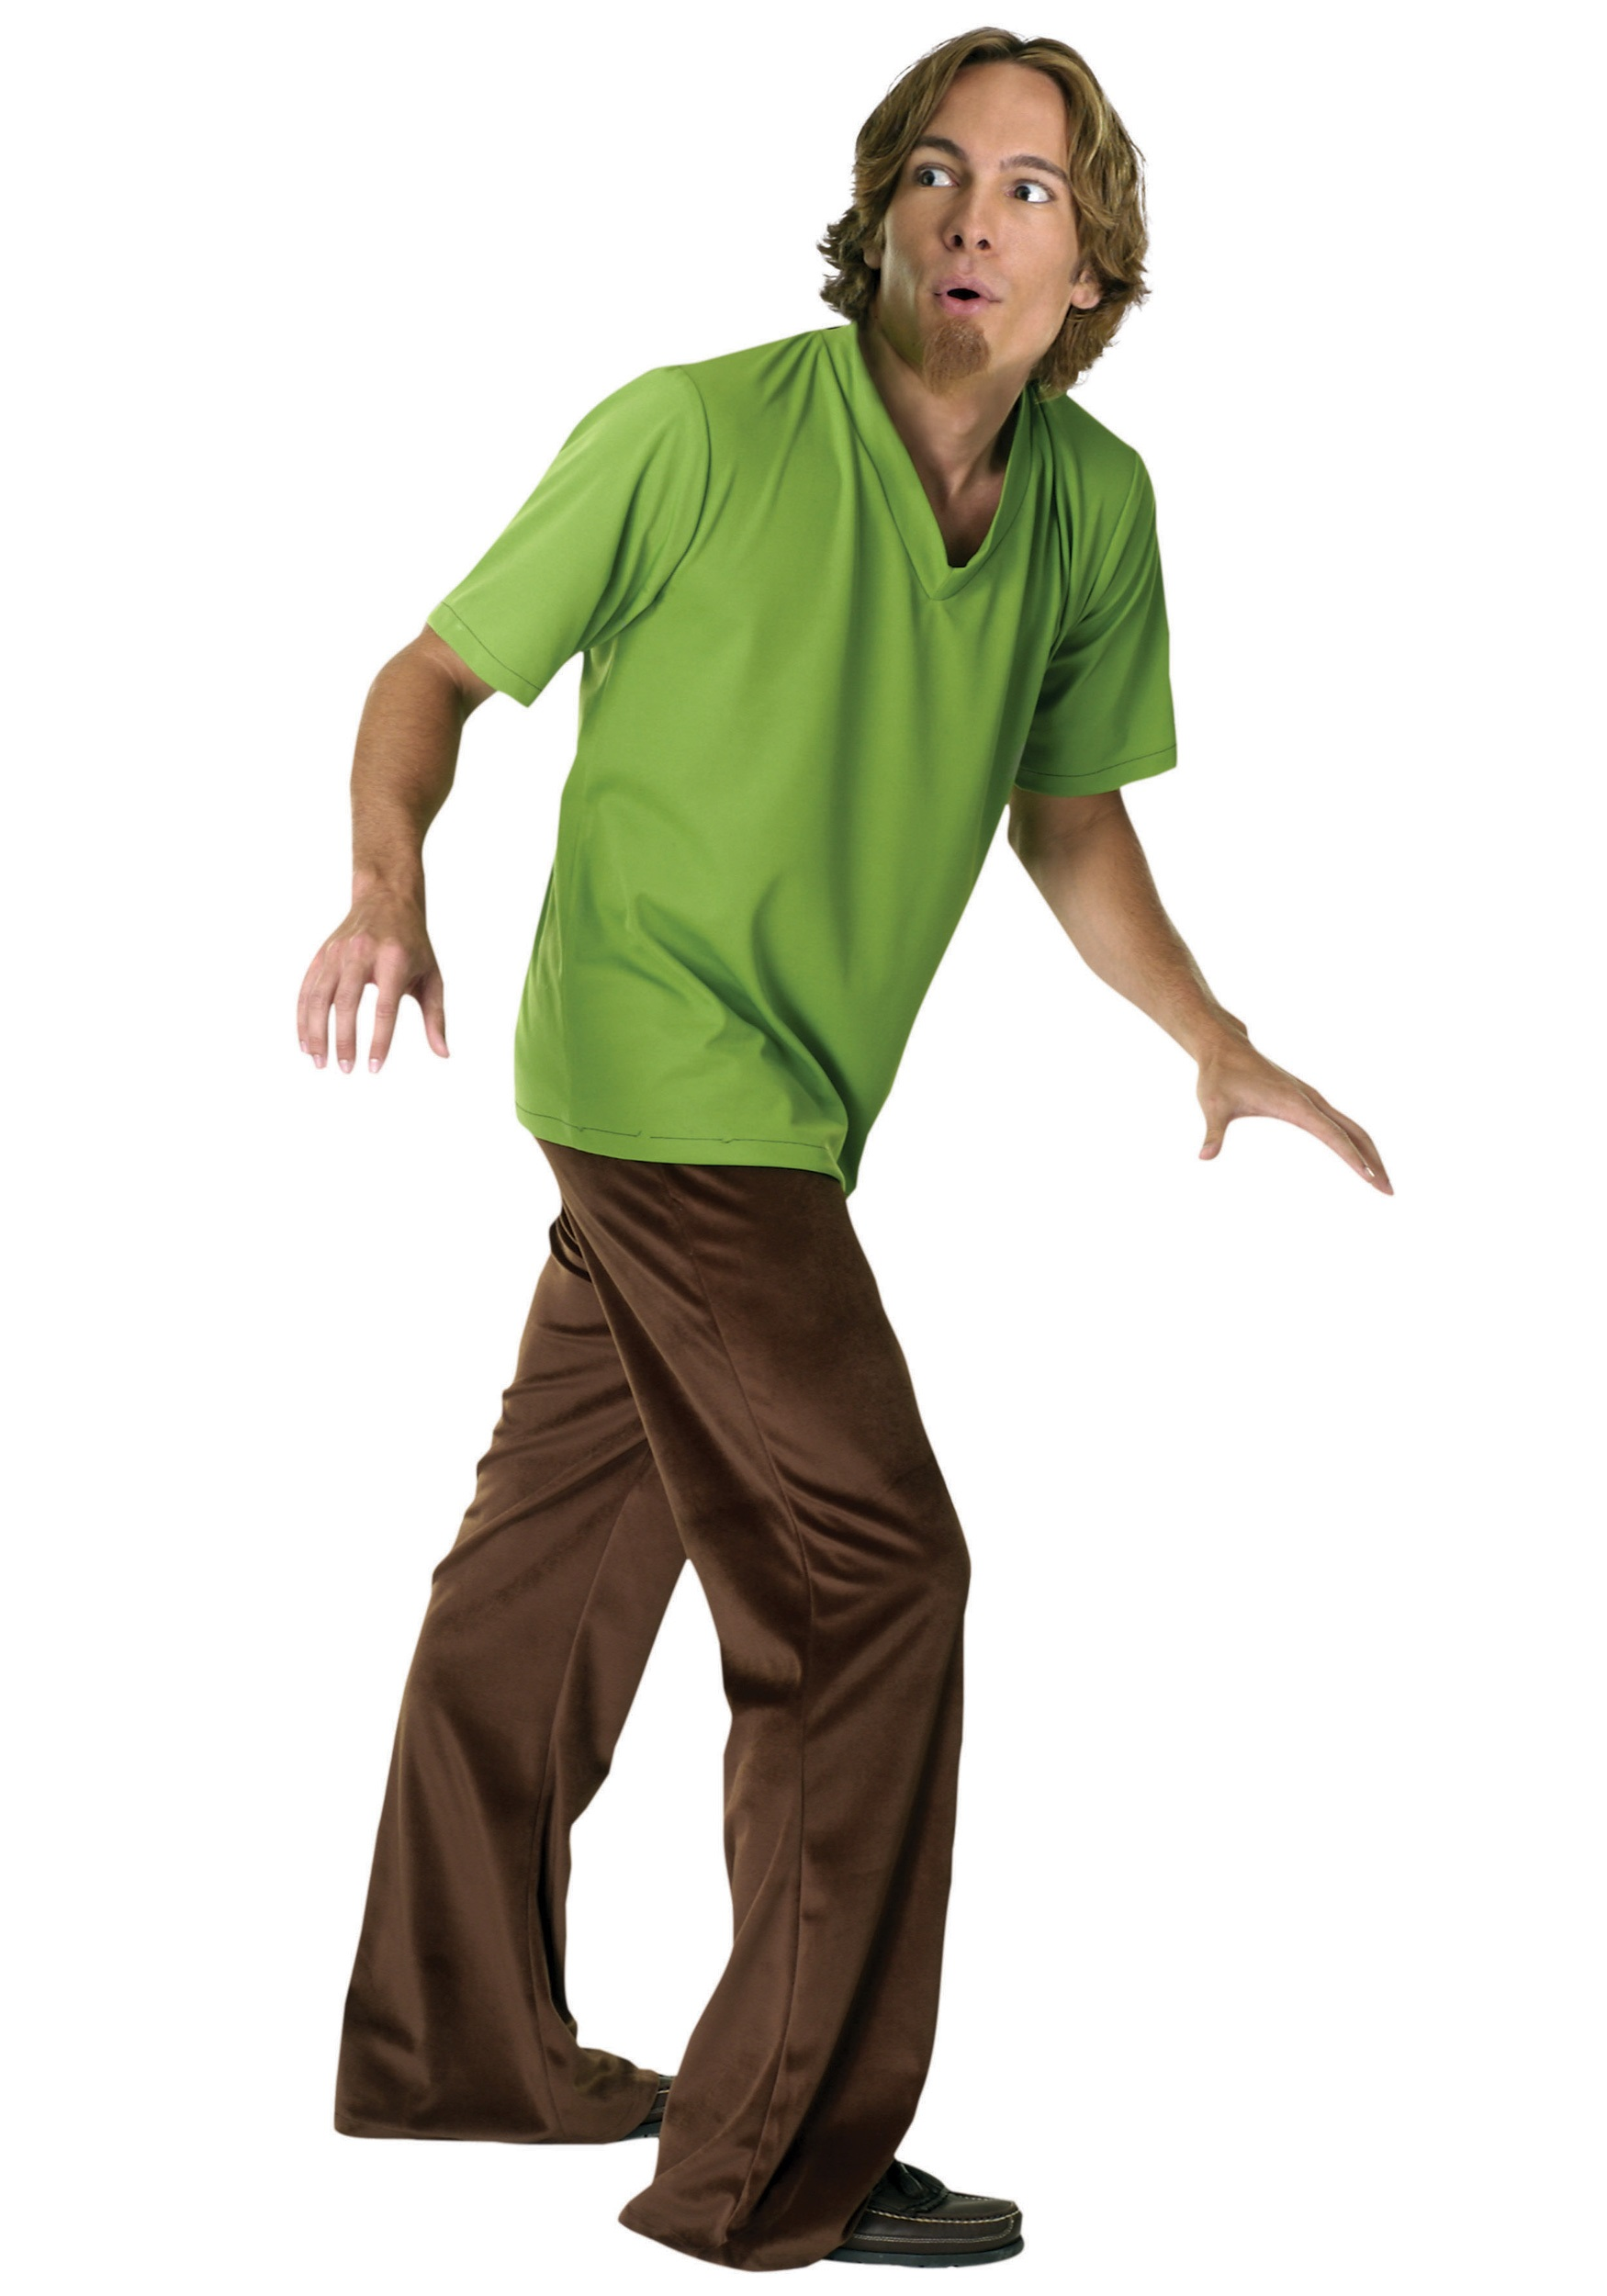 Adult Shaggy Costume - Adult Scooby Doo Costumes